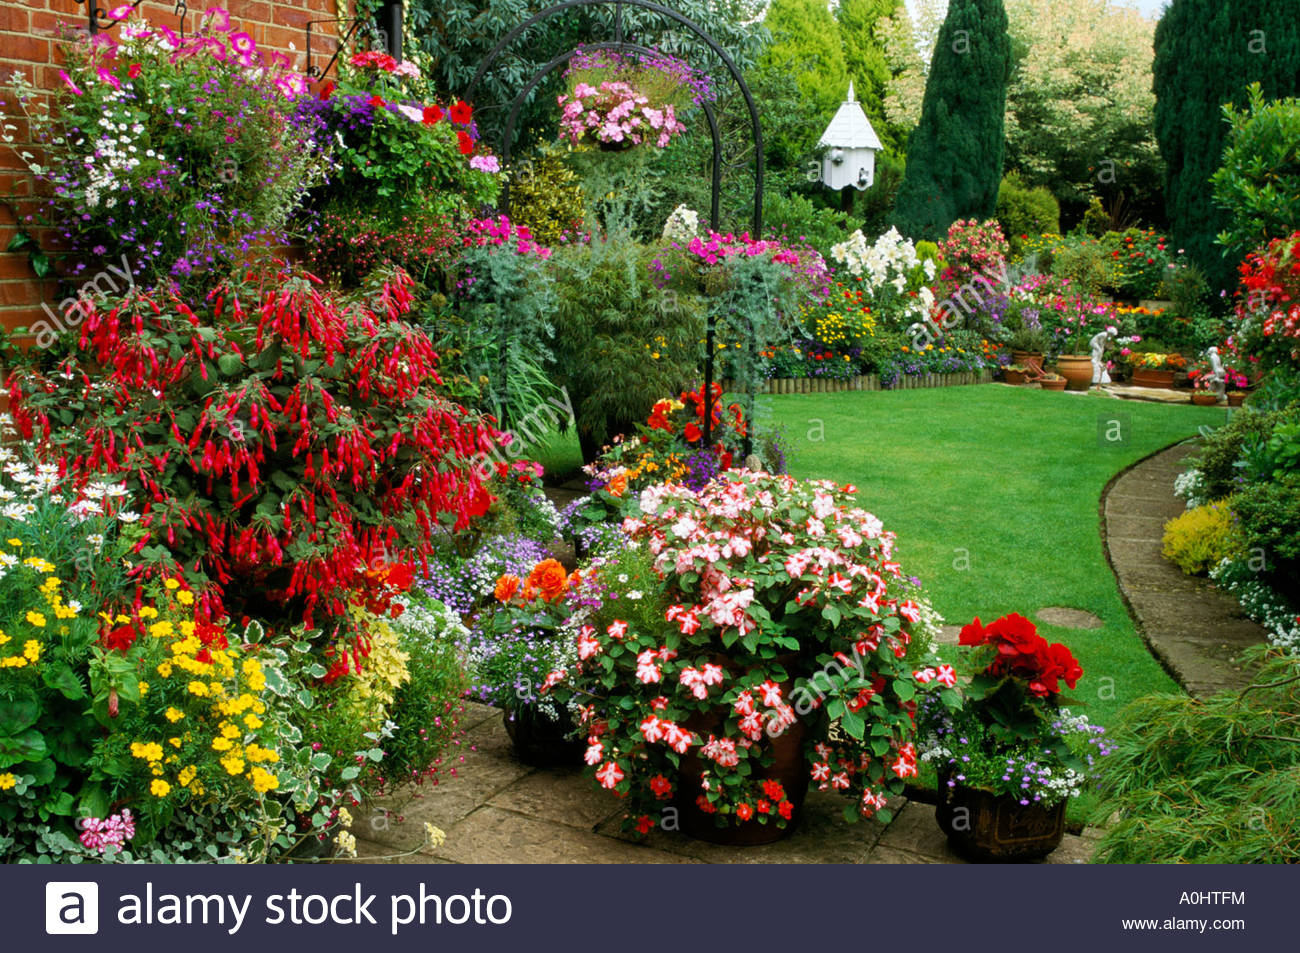 Colourful Garden With Mixed Borders Stock Photo Royalty